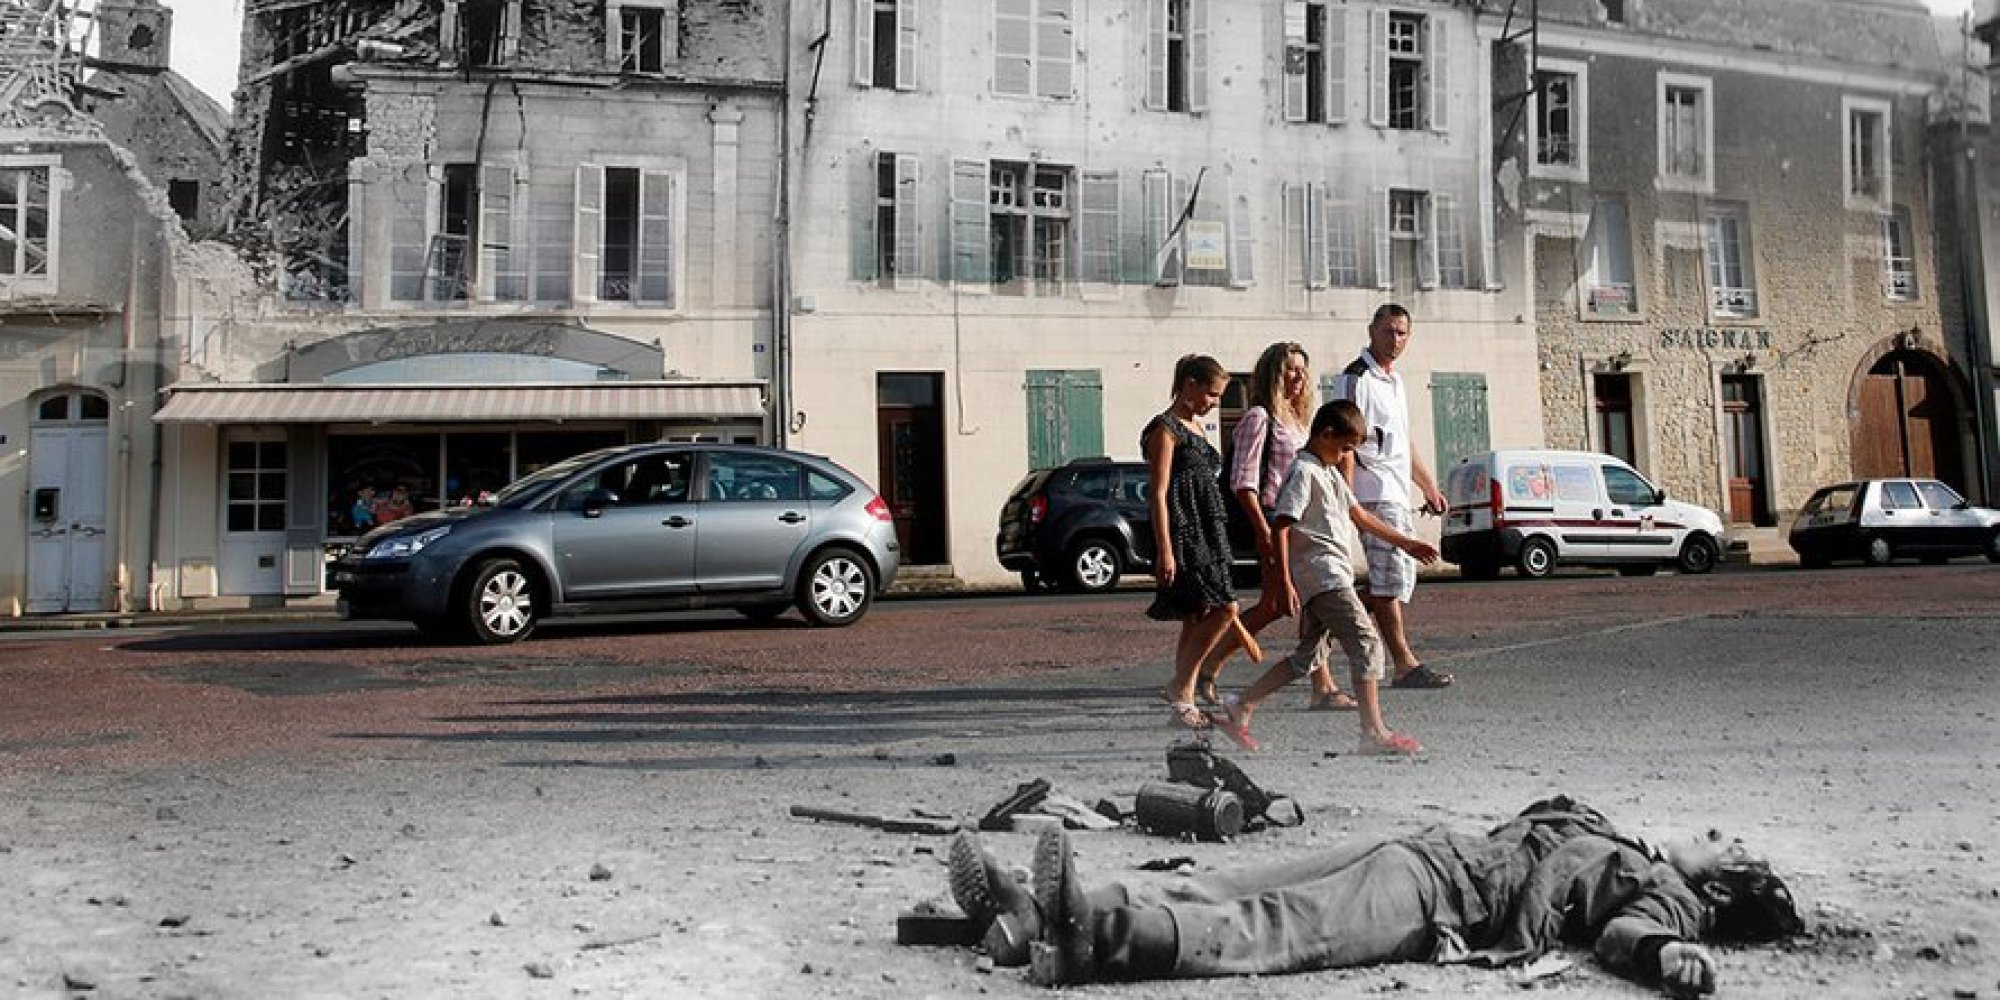 D-Day Landing Sites Then And Now: 11 Striking Images That ...